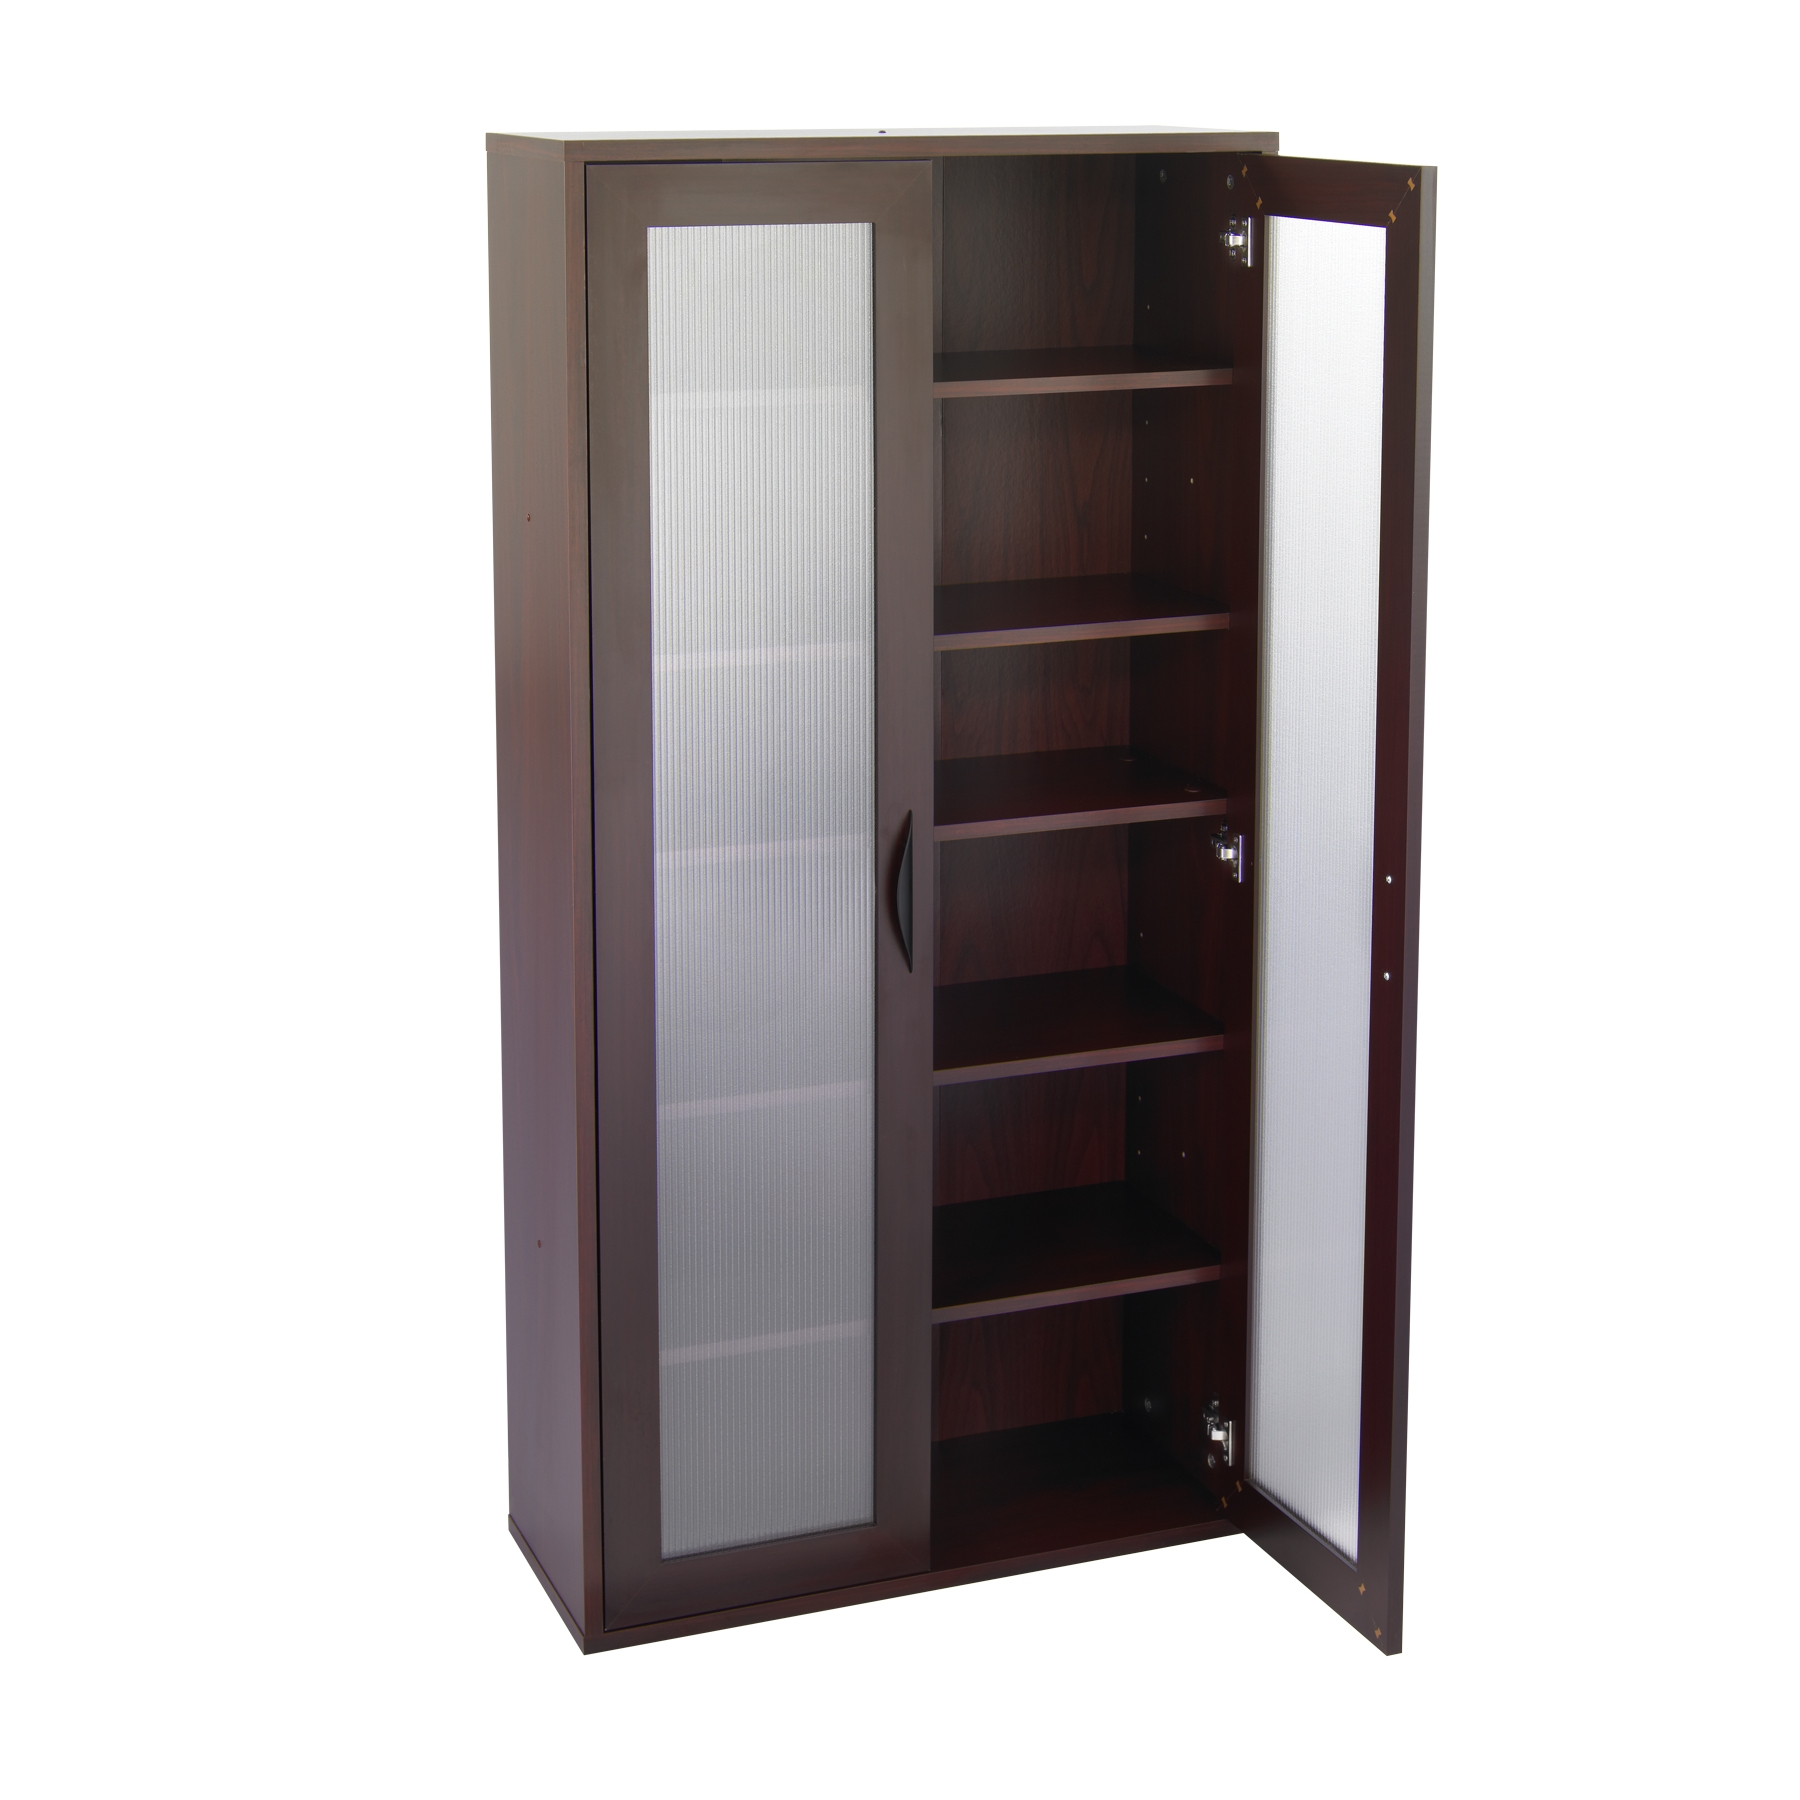 Tall Storage Cabinets With Shelves